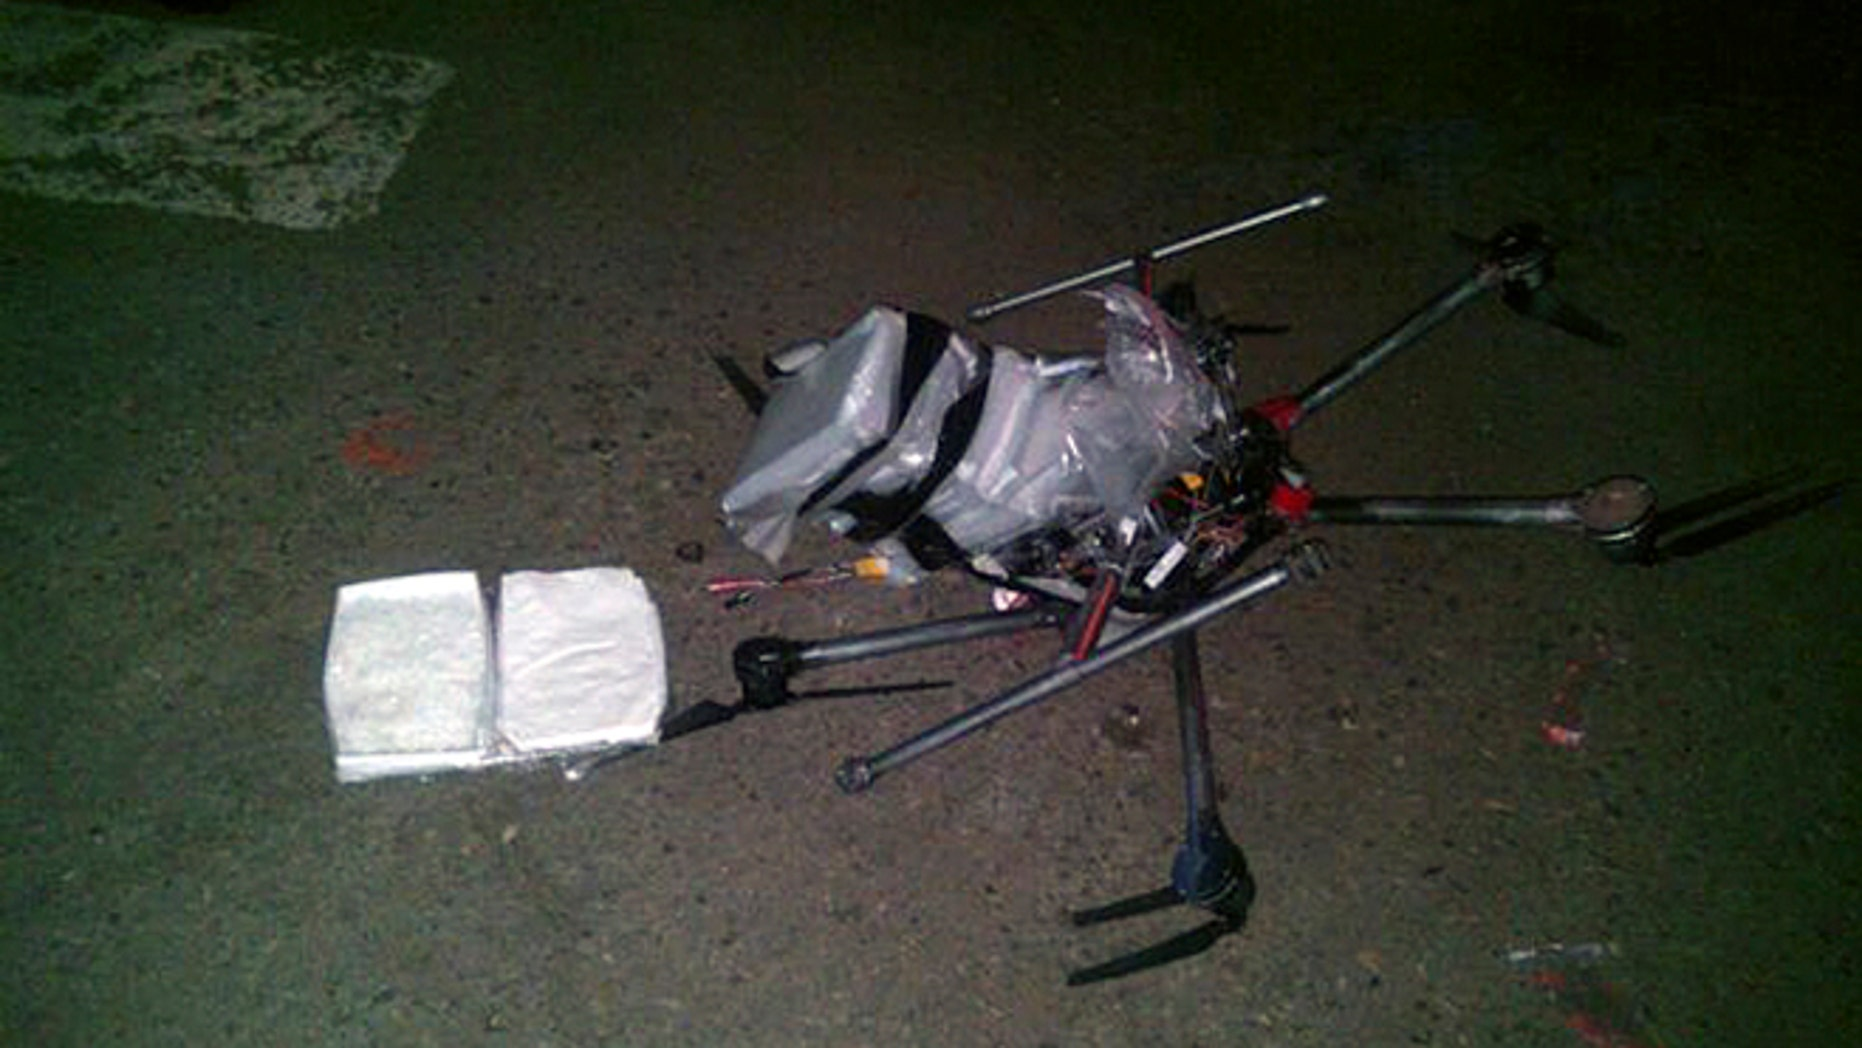 A drone loaded with methamphetamine crashed into a parking lot in Tijuana on Tuesday Jan. 20, 2015.